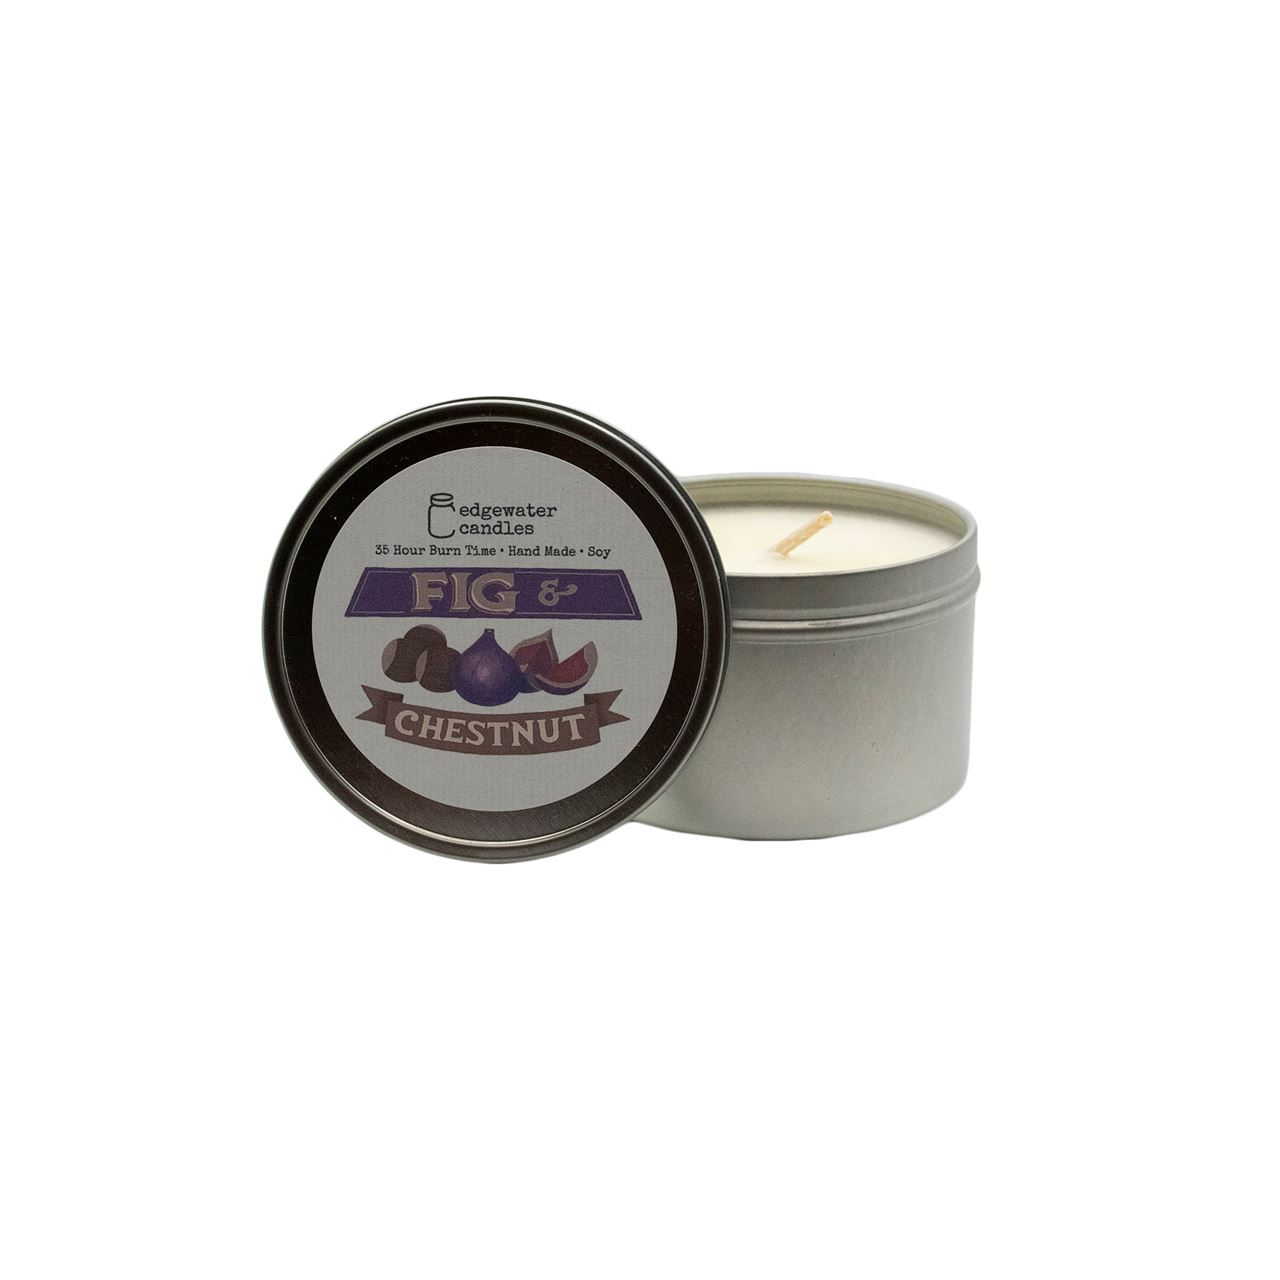 Fig and Chestnut Travel Tin by Edgewater Candles